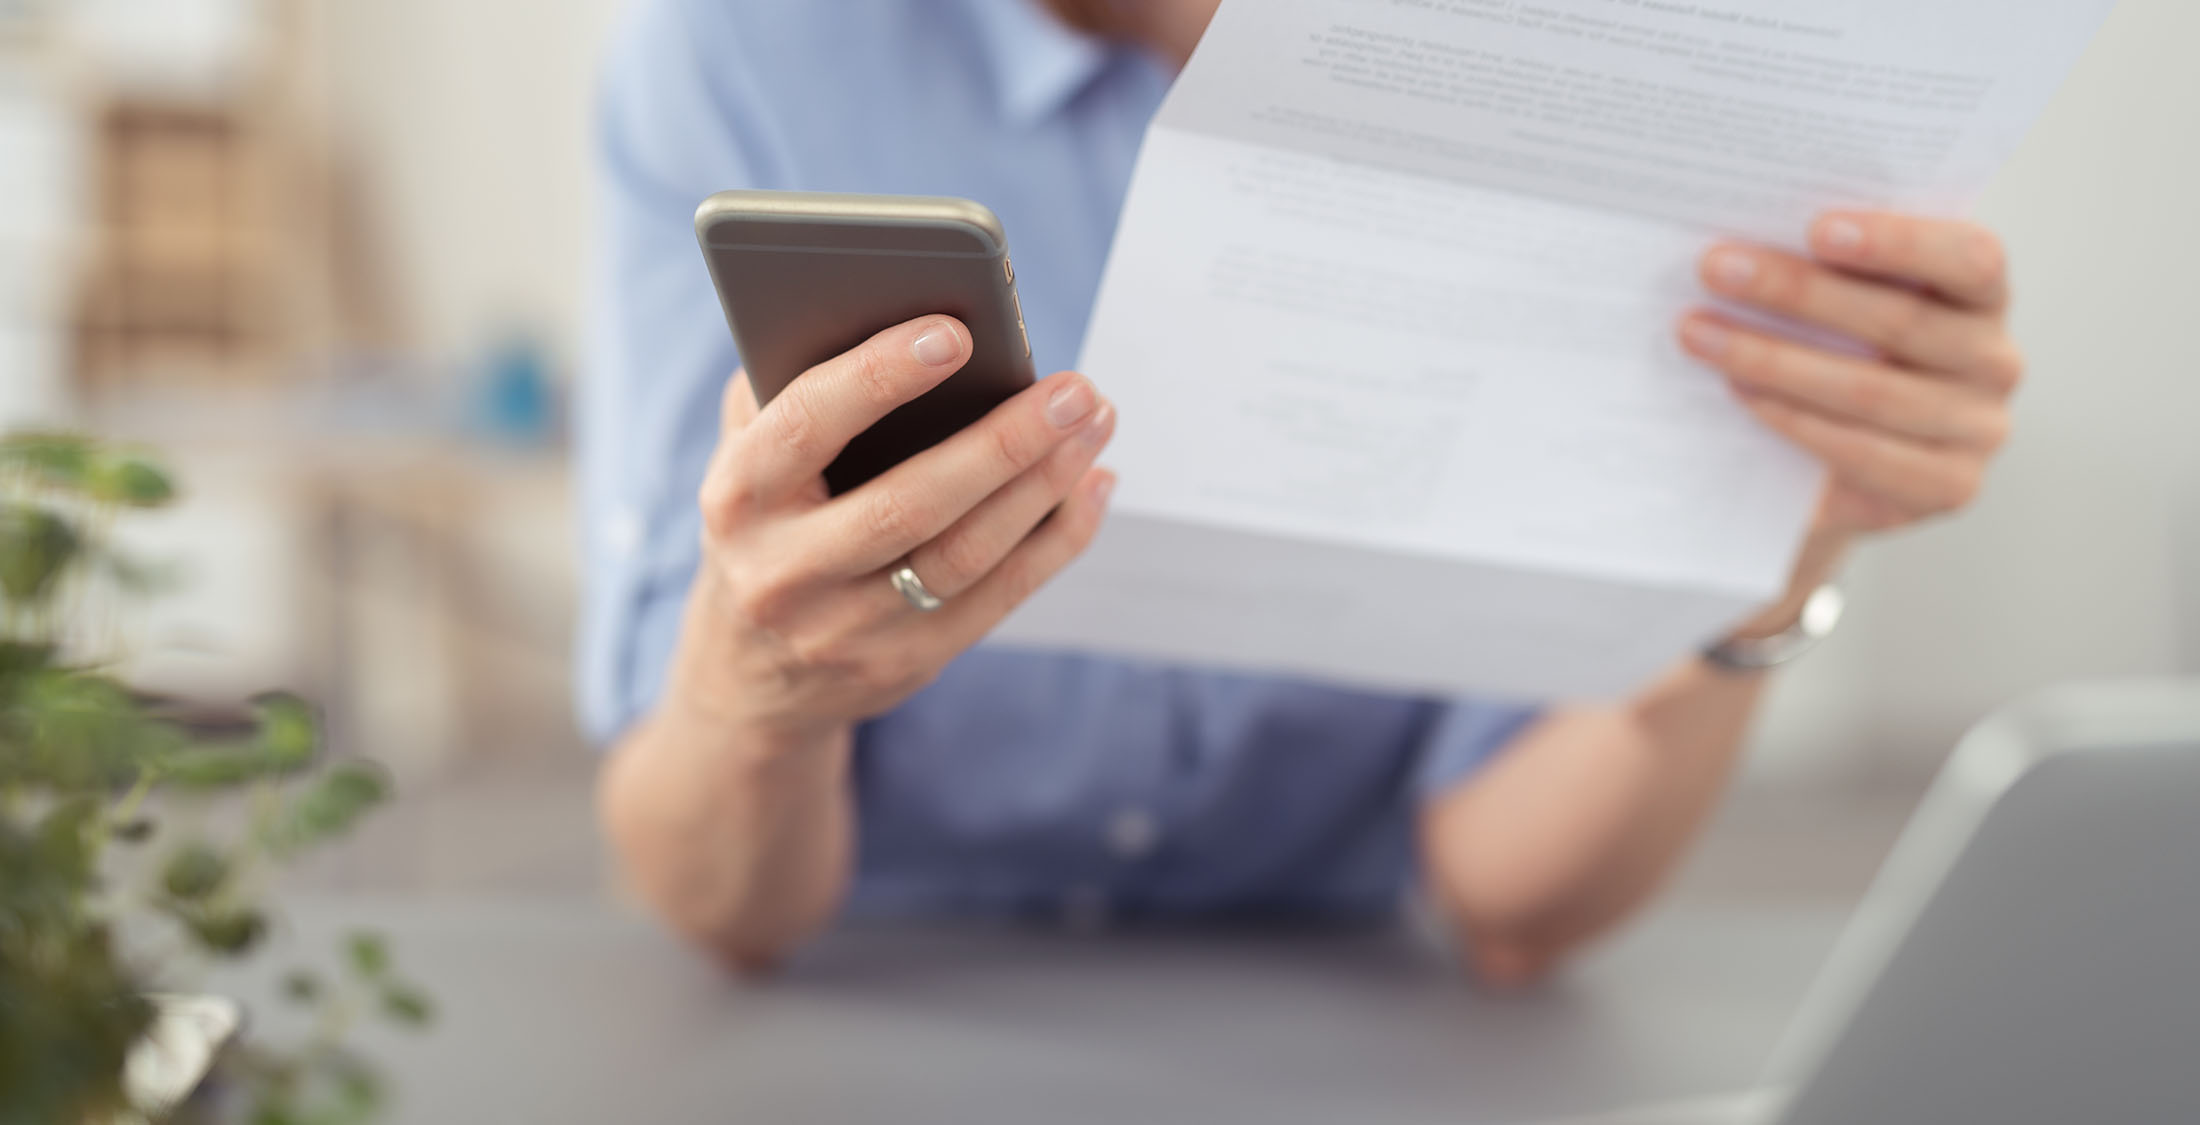 person holding phone and paper